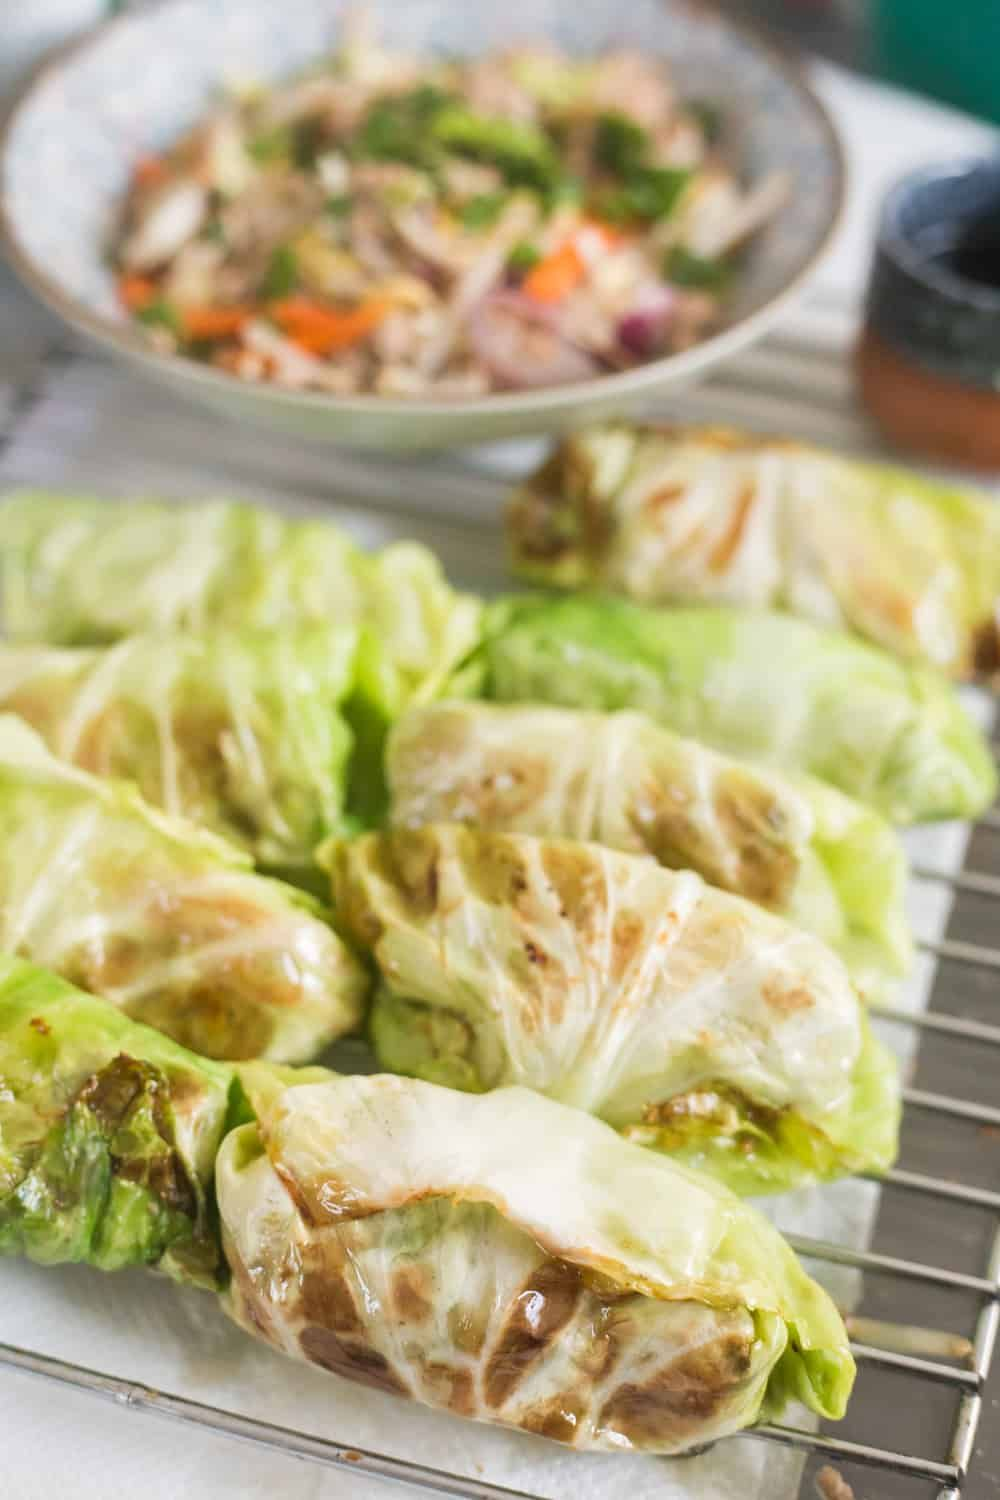 Keto Egg Roll (In a Bowl or Wrap) | Cabbage Rolls | The Hungry Elephant